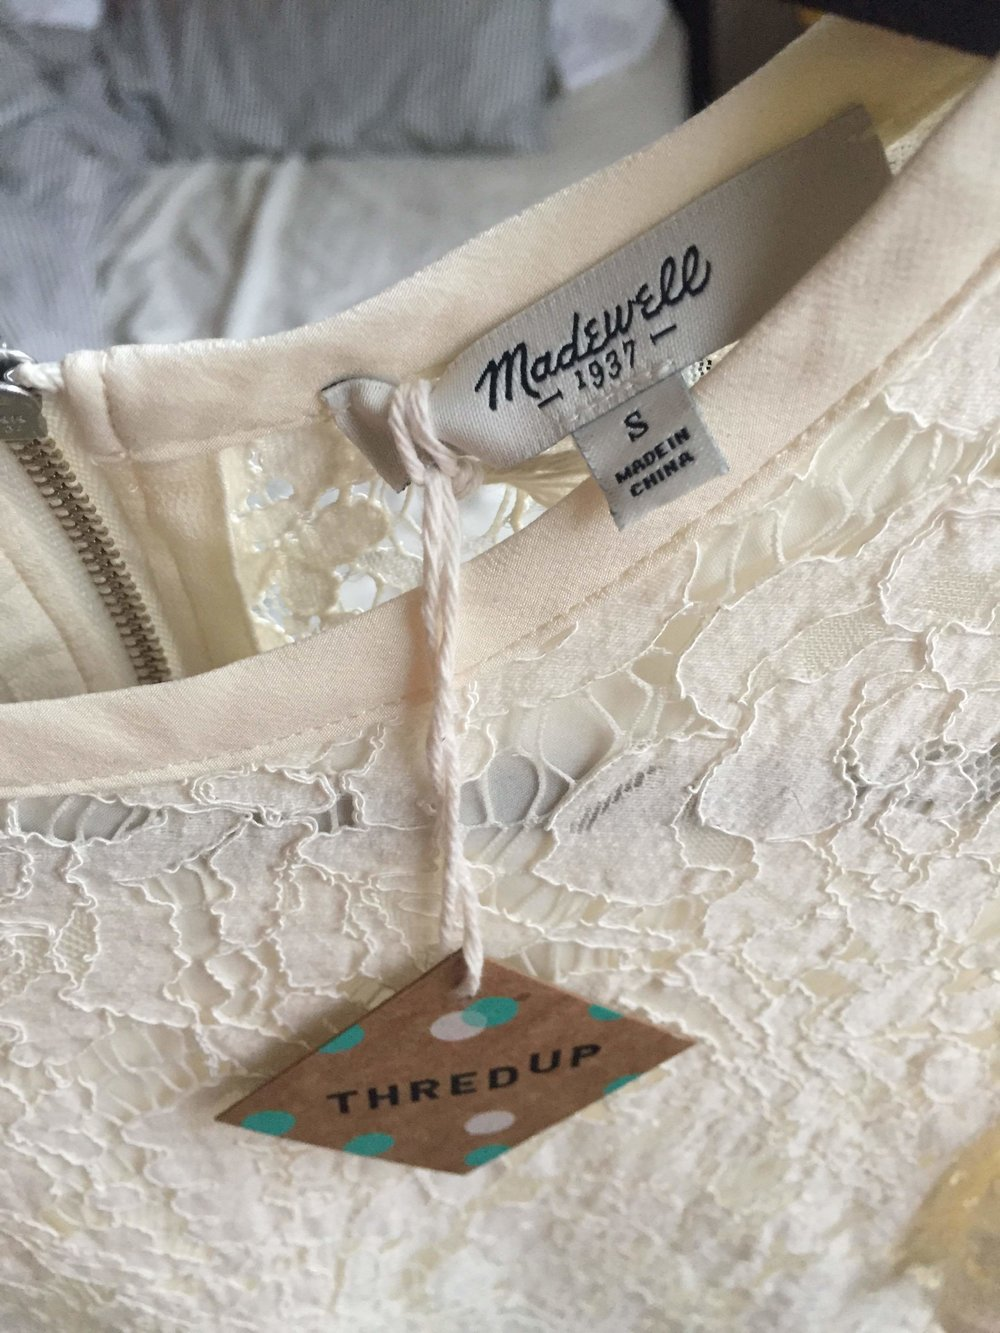 Shop Madewell styles on ThredUp  HERE